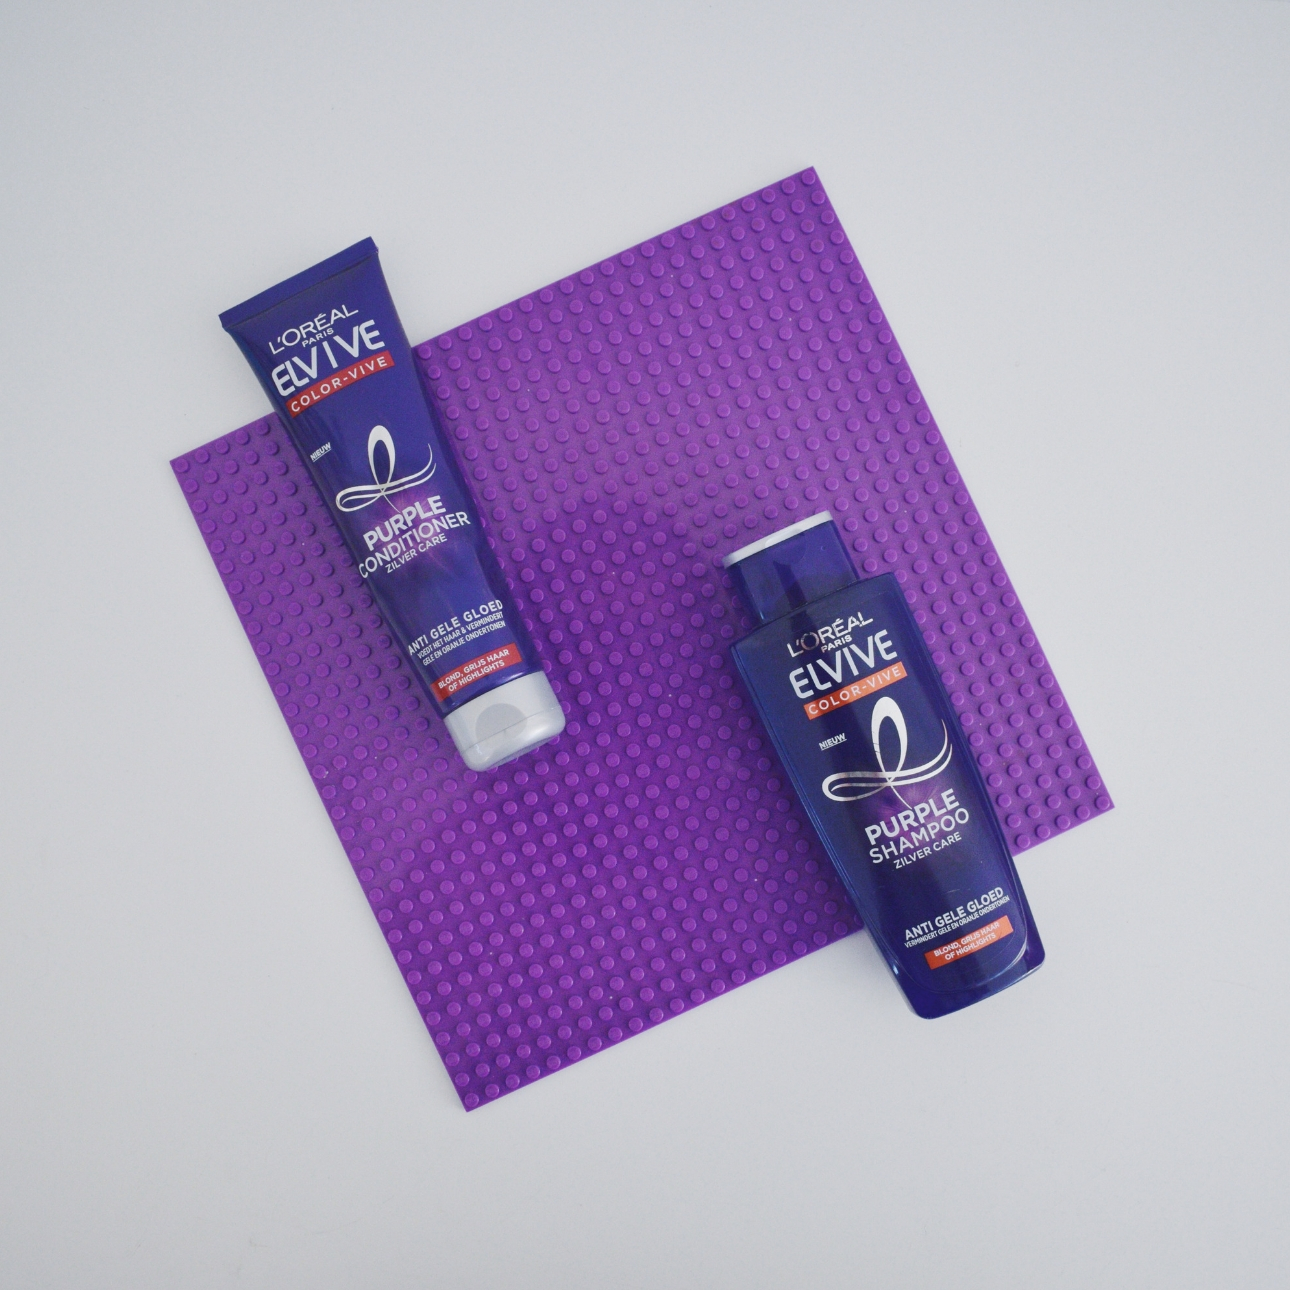 loreal elvive purple shampoo zilver care purple conditioner mamalifestyle